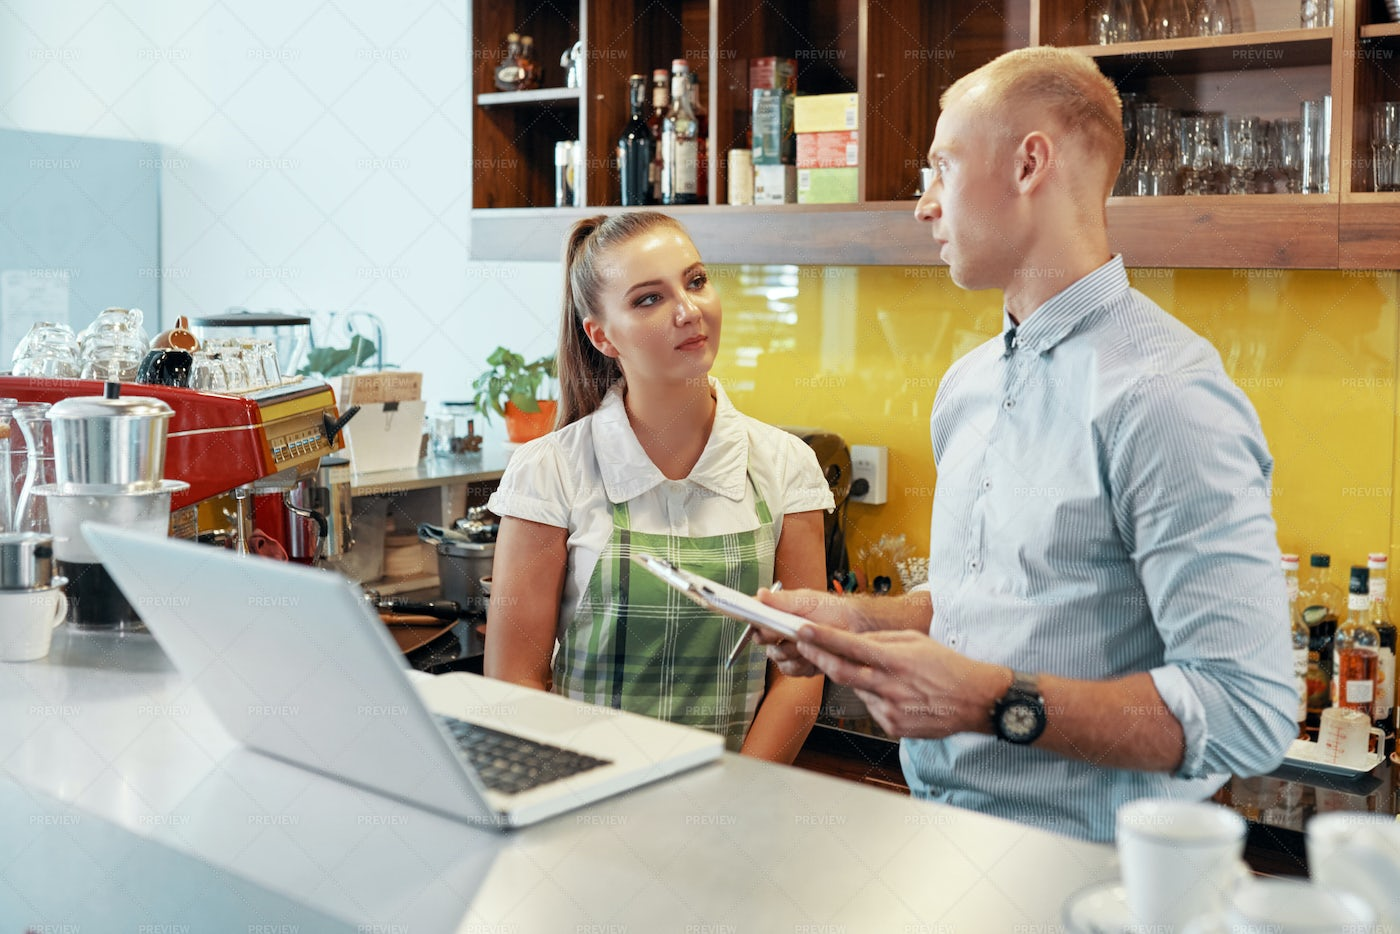 Talking Manger And Barista In...: Stock Photos